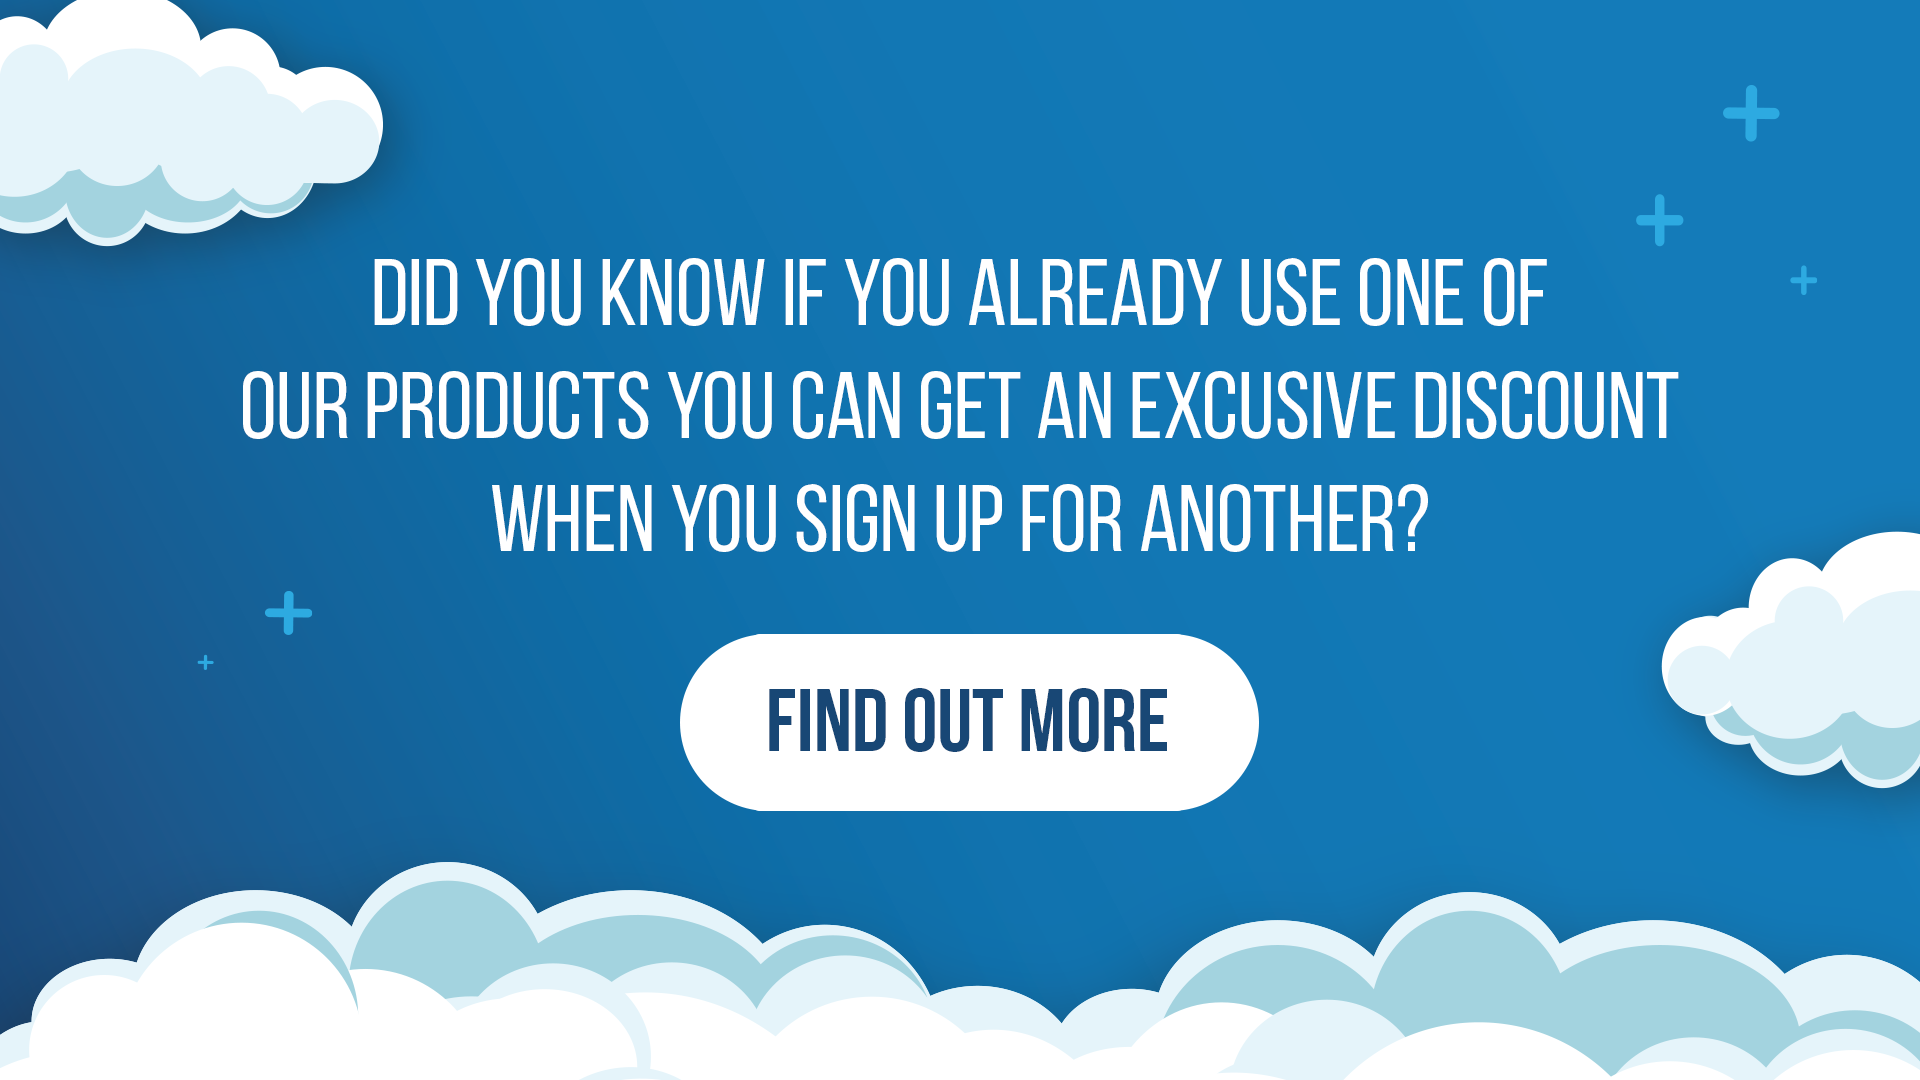 If you already use one of our products, get a discount when you sign up for another